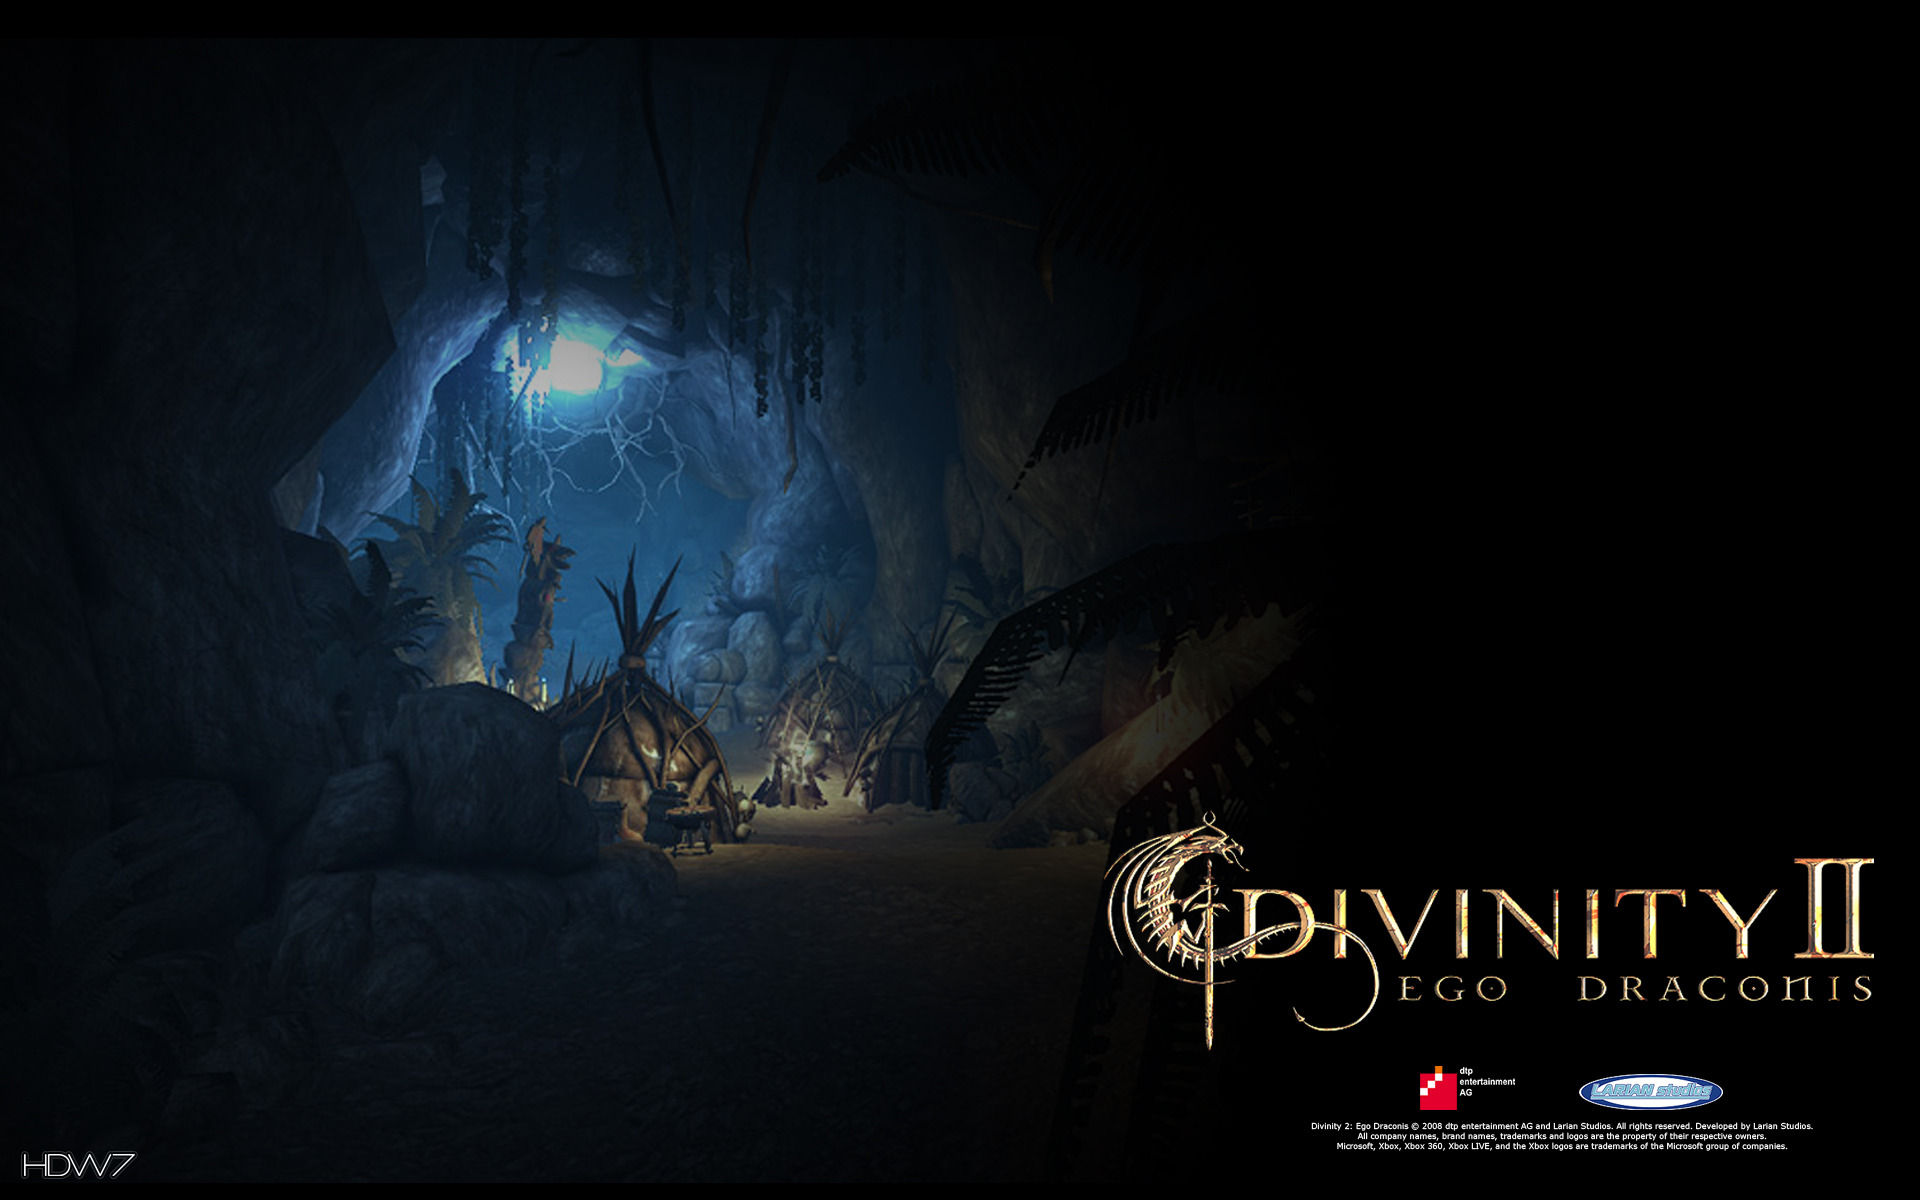 divinity 2 underground environment widescreen wallpaper